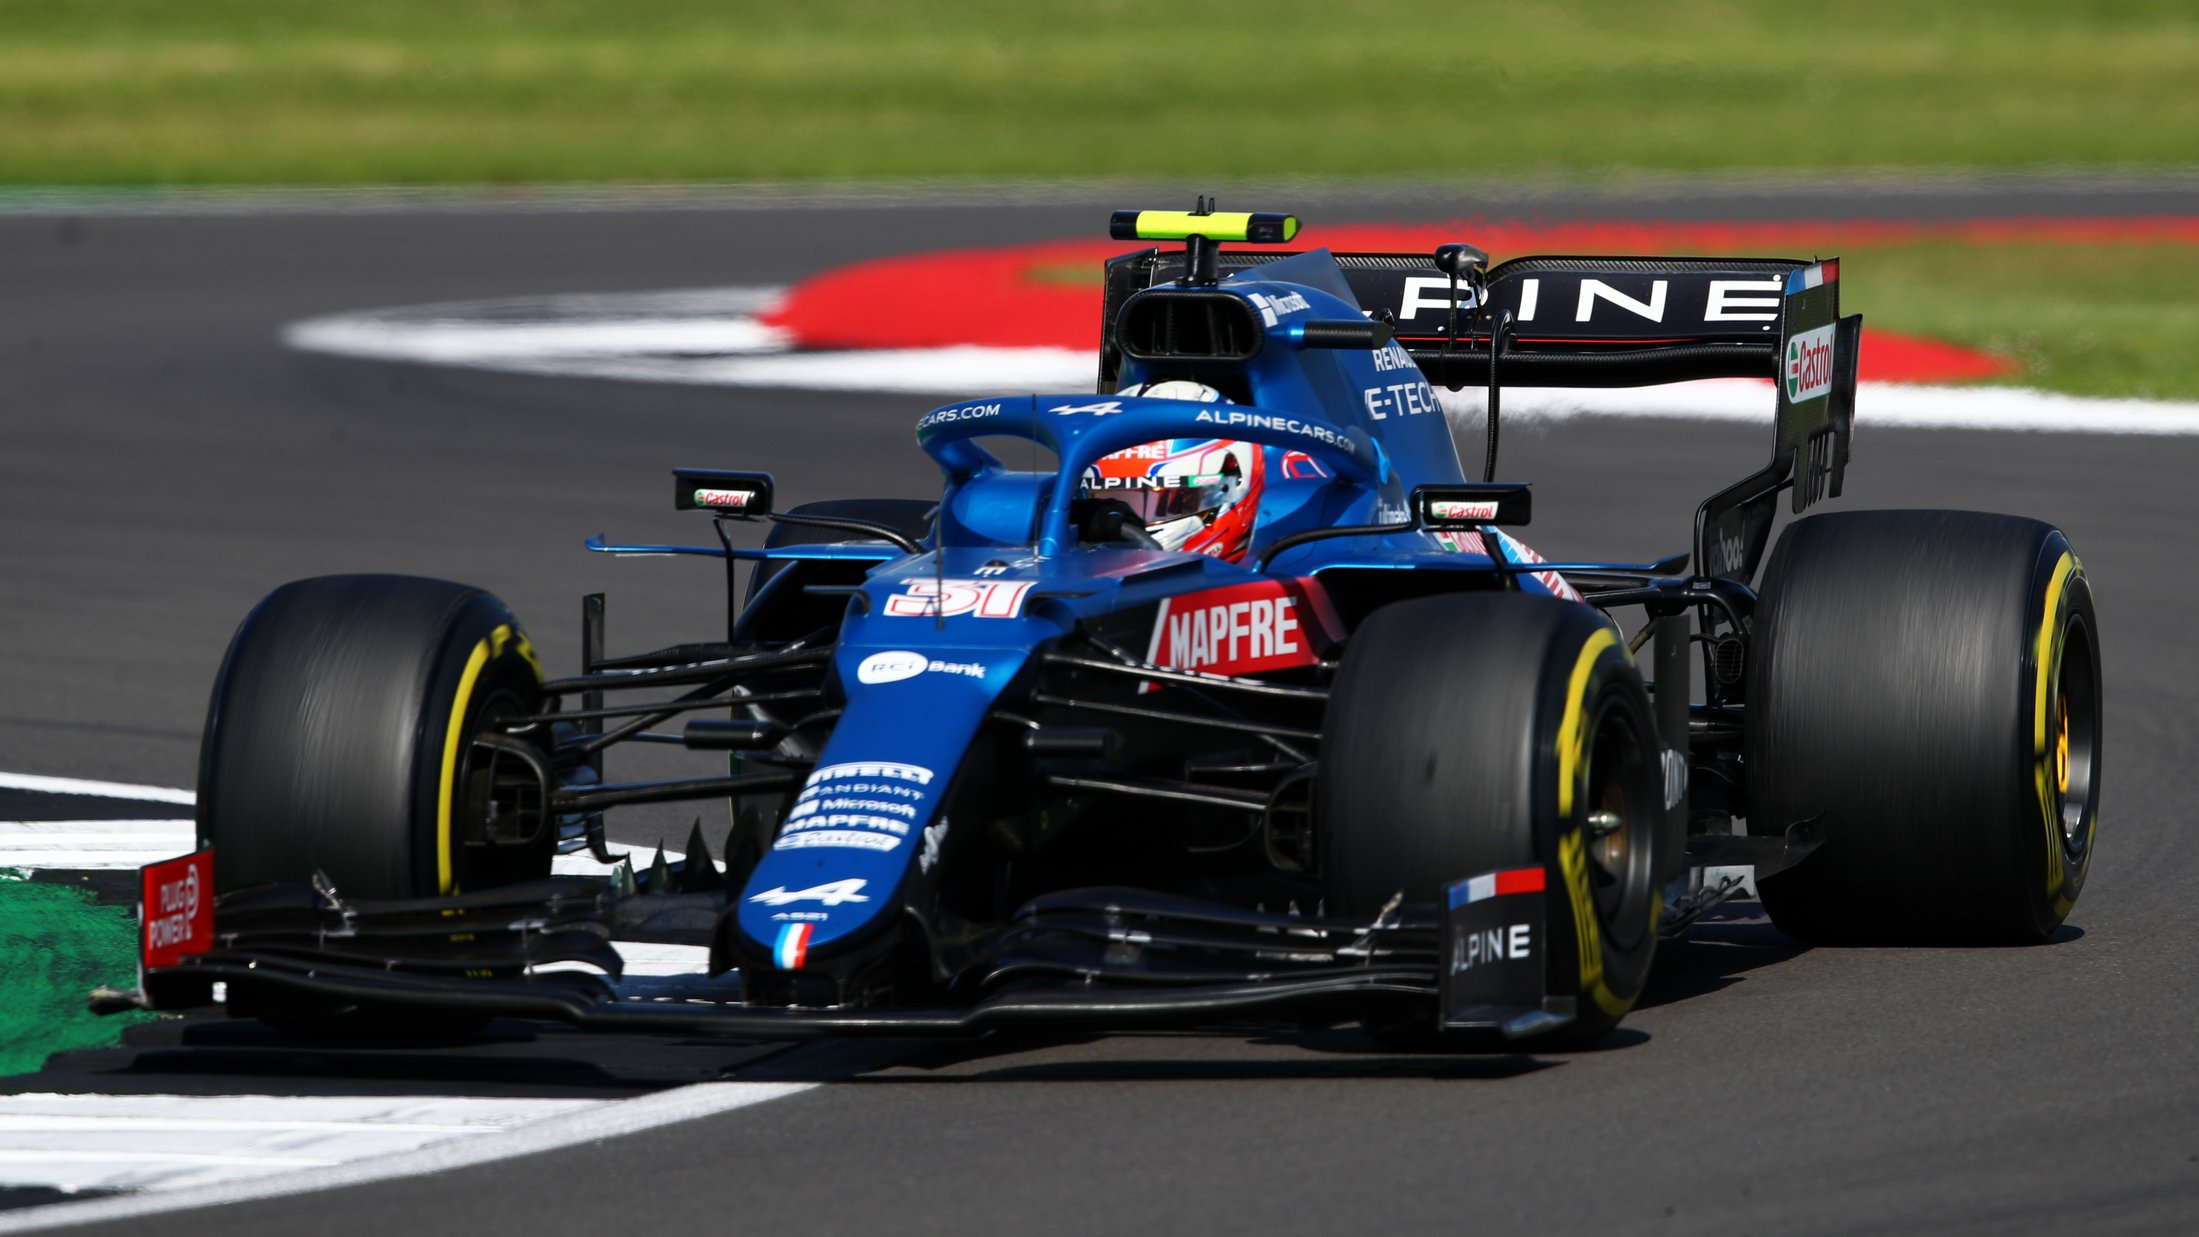 Alpine confirm full switch of development focus to all-new 2022 car